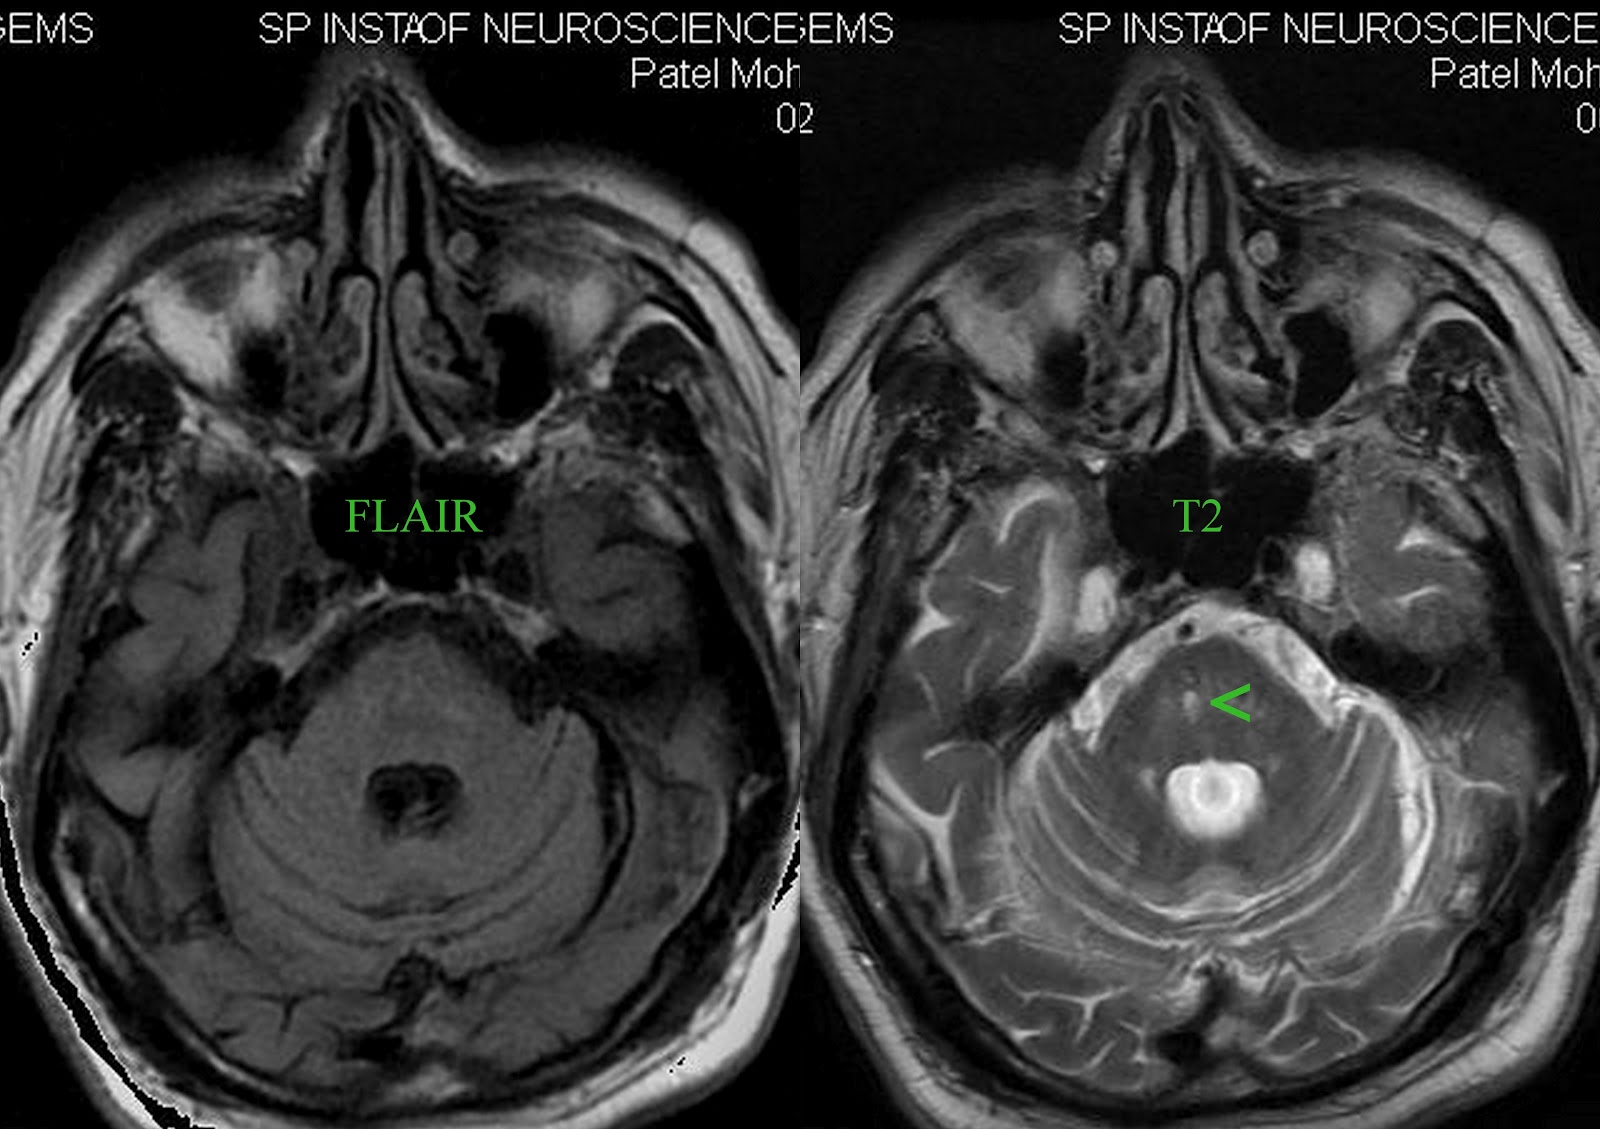 Lack of sensitivity of FLAIR for posterior fossa lesions